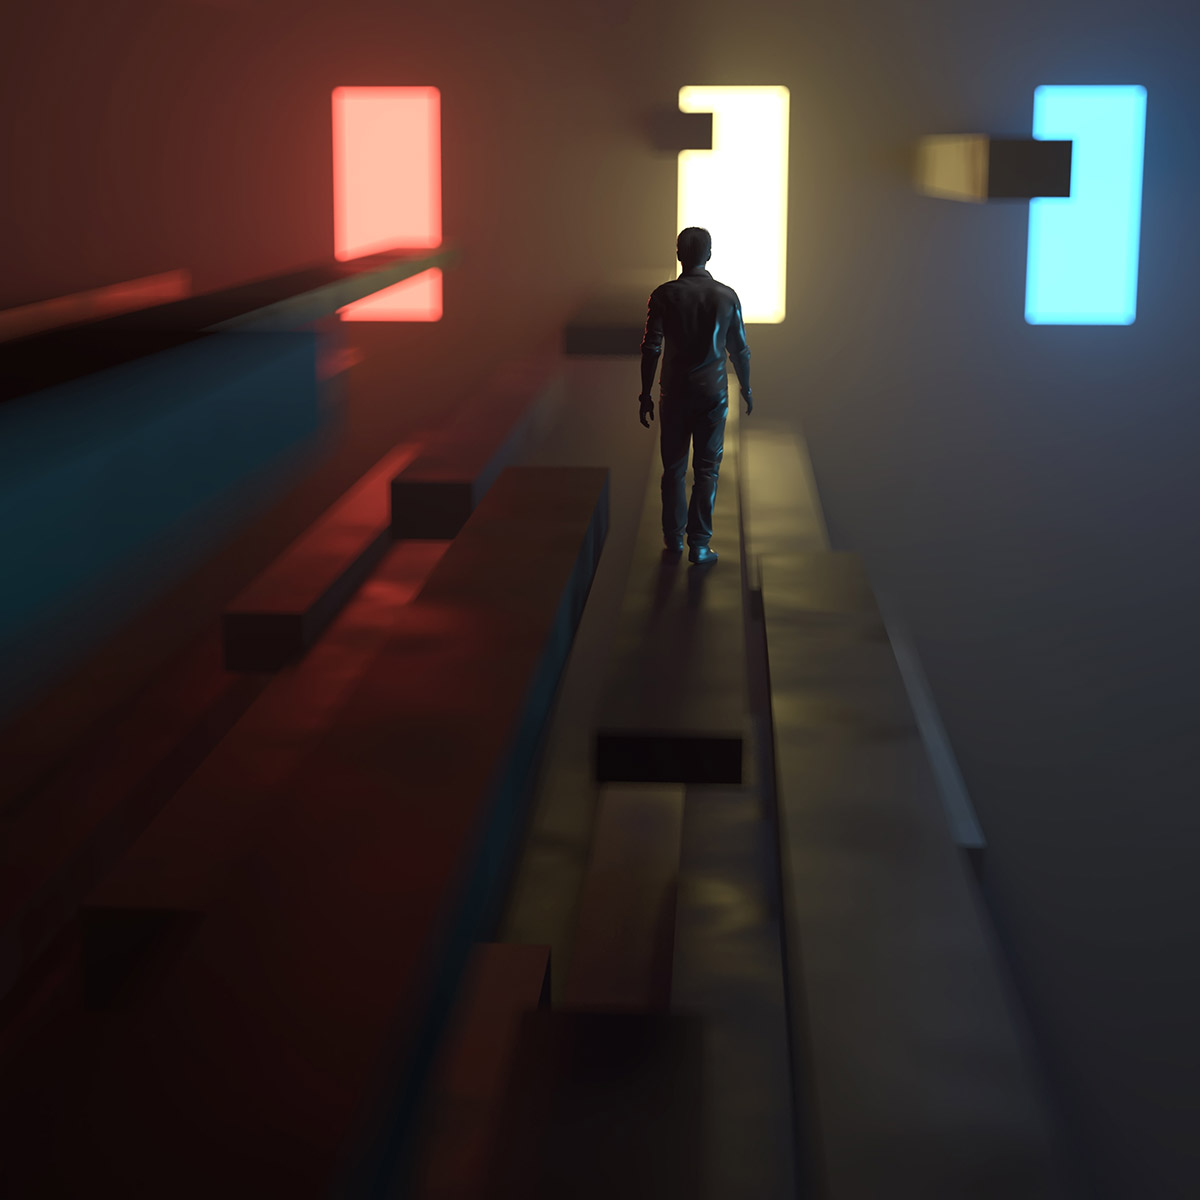 man going to the light